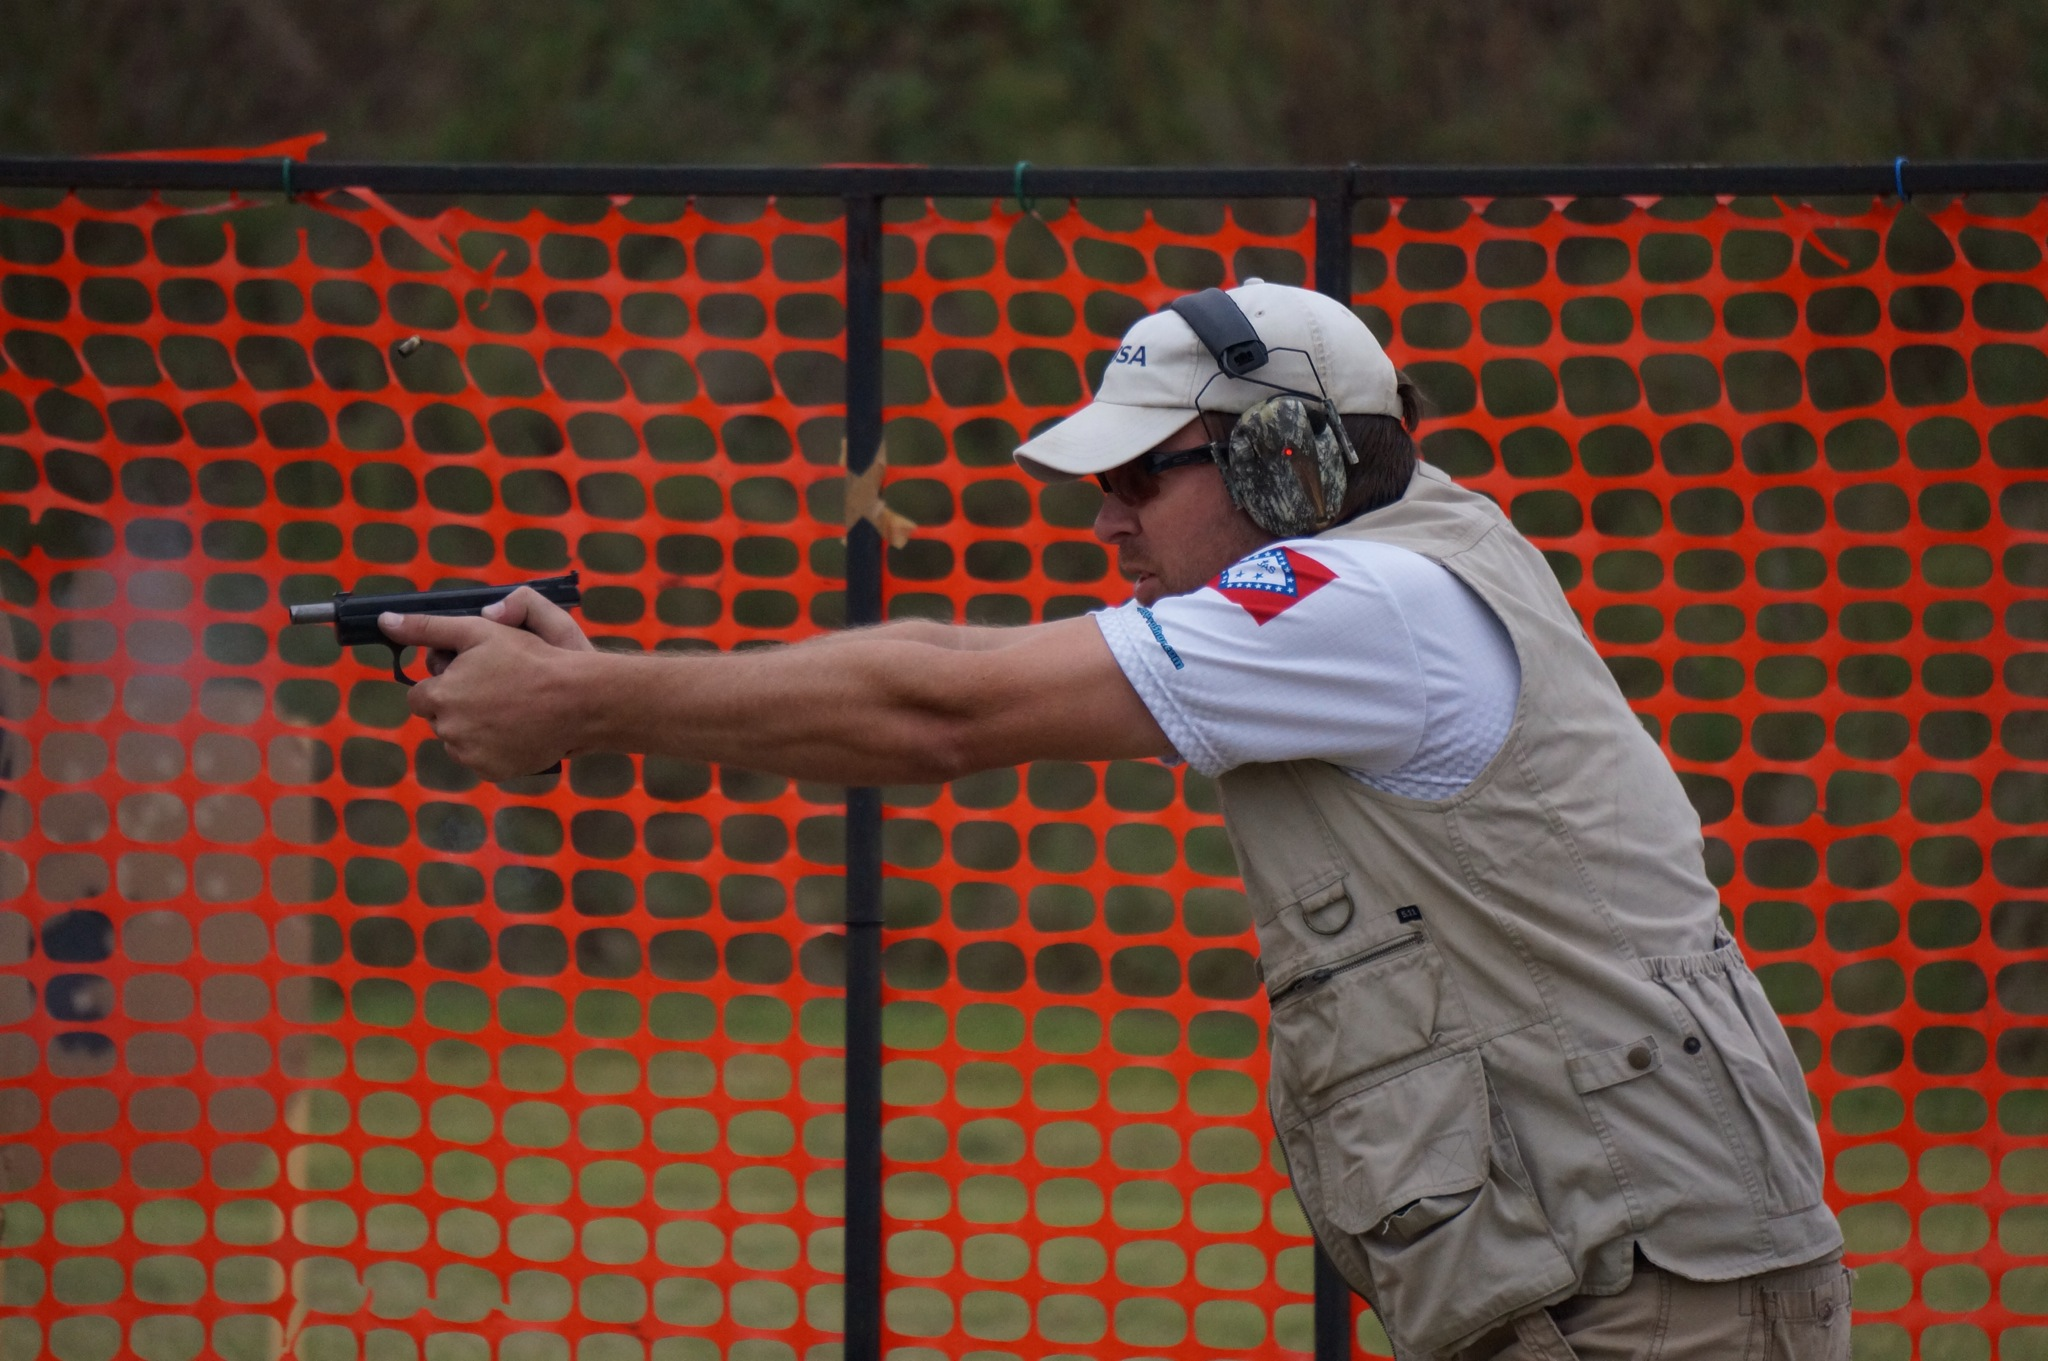 IDPA Nationals Day 2: your current leaders